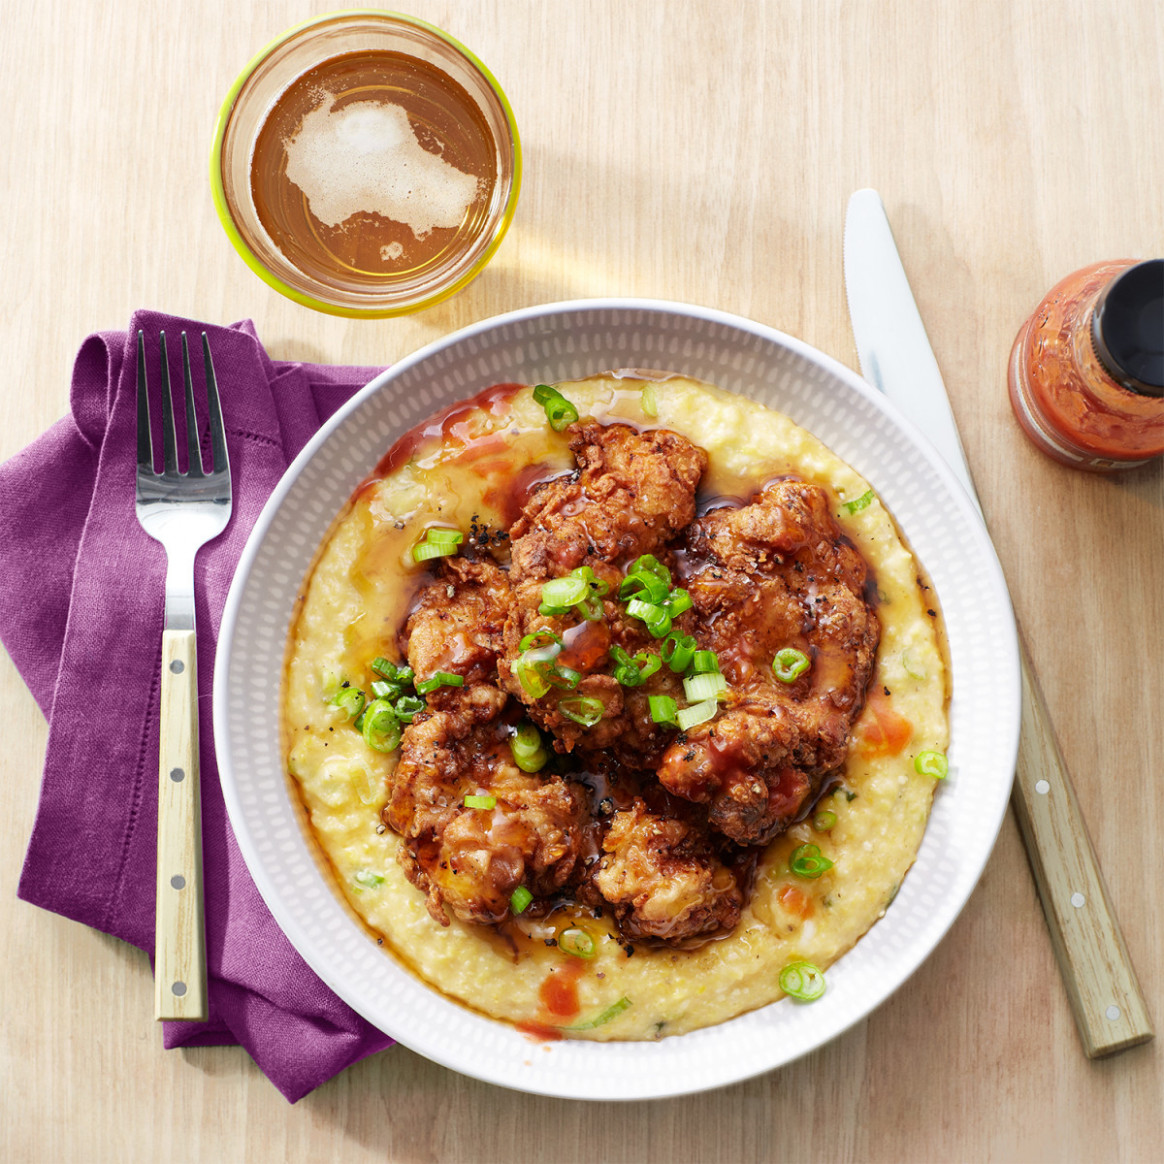 Fried Chicken Thighs & Cheesy Grits With Green Onions ..